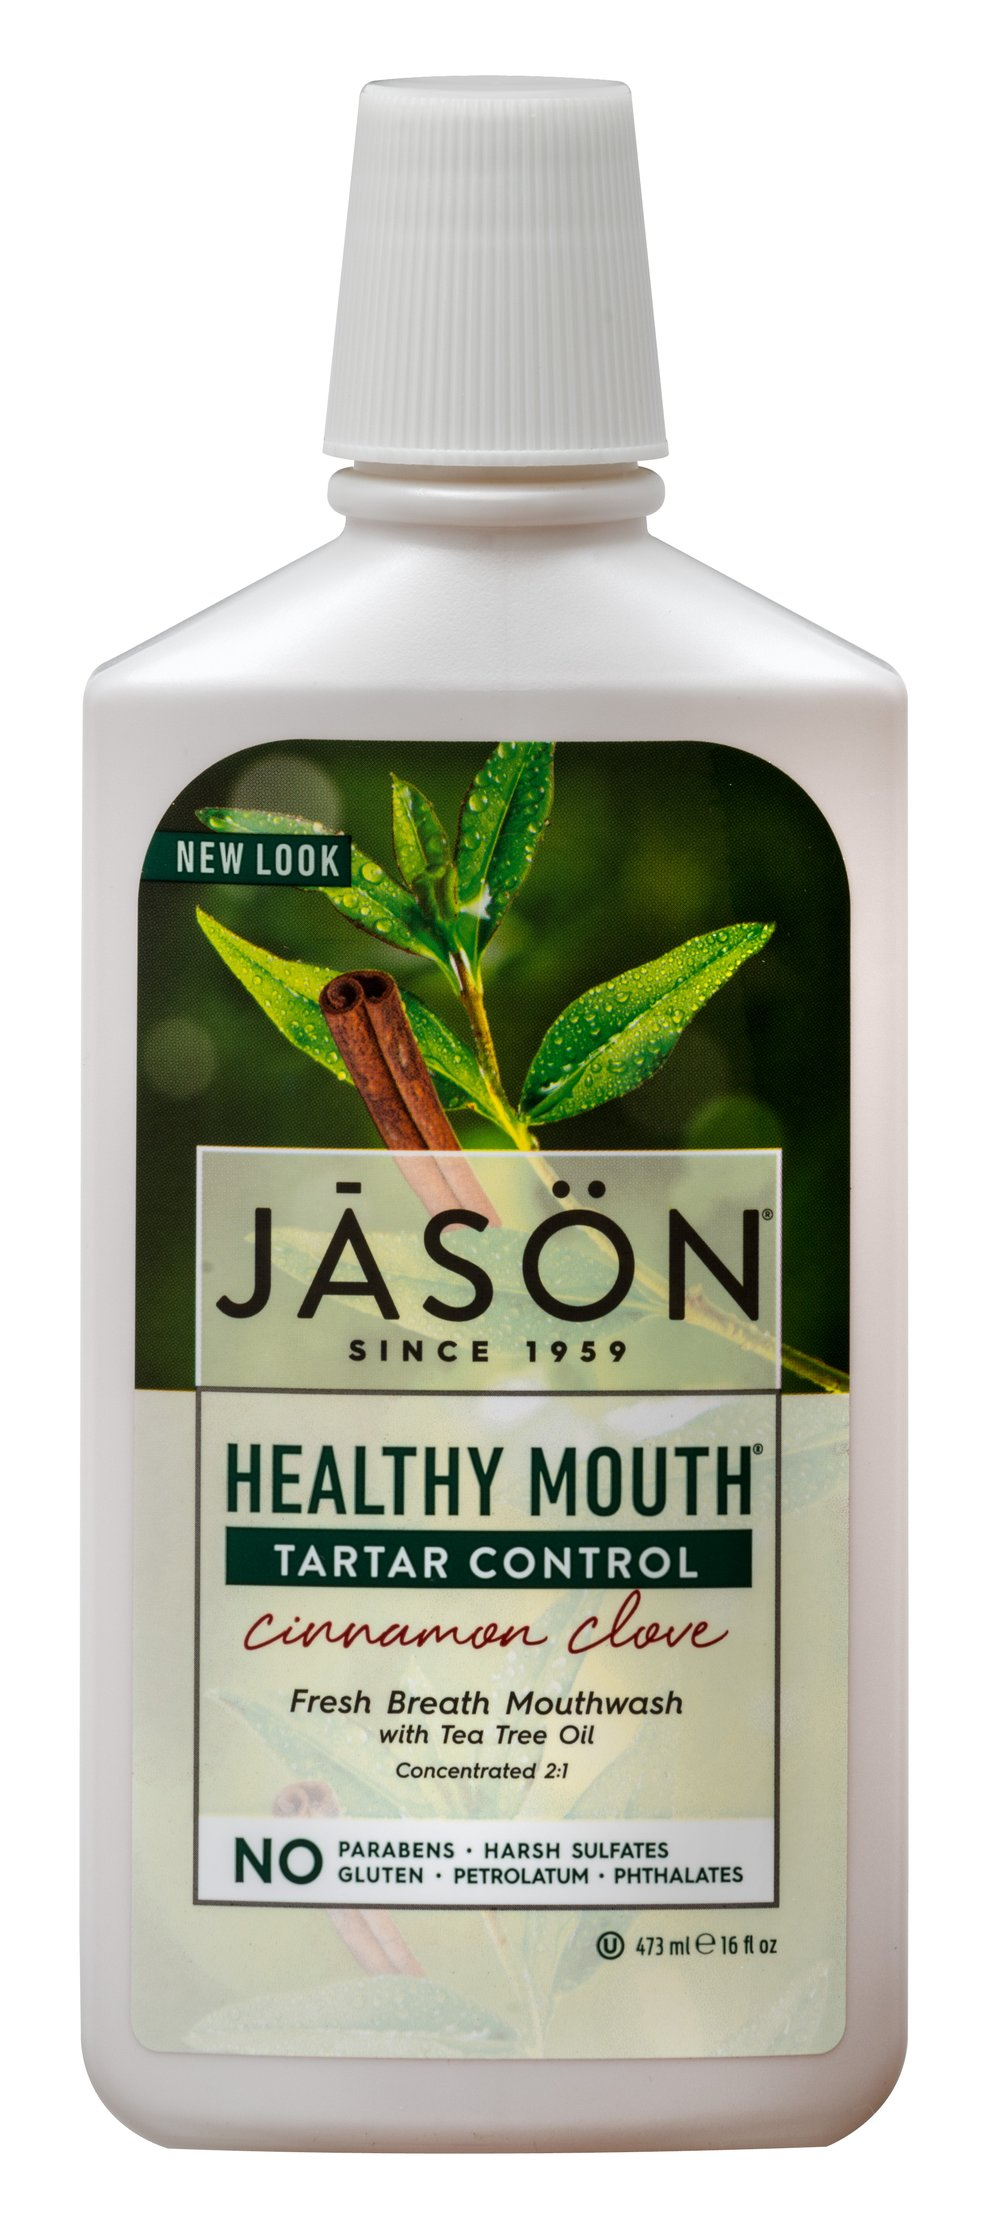 Jason® Healthy Mouth® Tea Tree & Cinnamon Mouthwash <p><strong>From the Manufacturer:</strong></p><p>Freshens your breath and keep your Mouth Healthy, without harsh abrasives or irritating chemicals</p><p>Concentrated 2:1</p>If reduced intensity is desired, dilute one part mouthwash with one part water before use.  <p>Certified Organic Tea Tree Oil and Aloe Vera Gel</p><p>Natural Clove & Cinnamon Oils</p&g